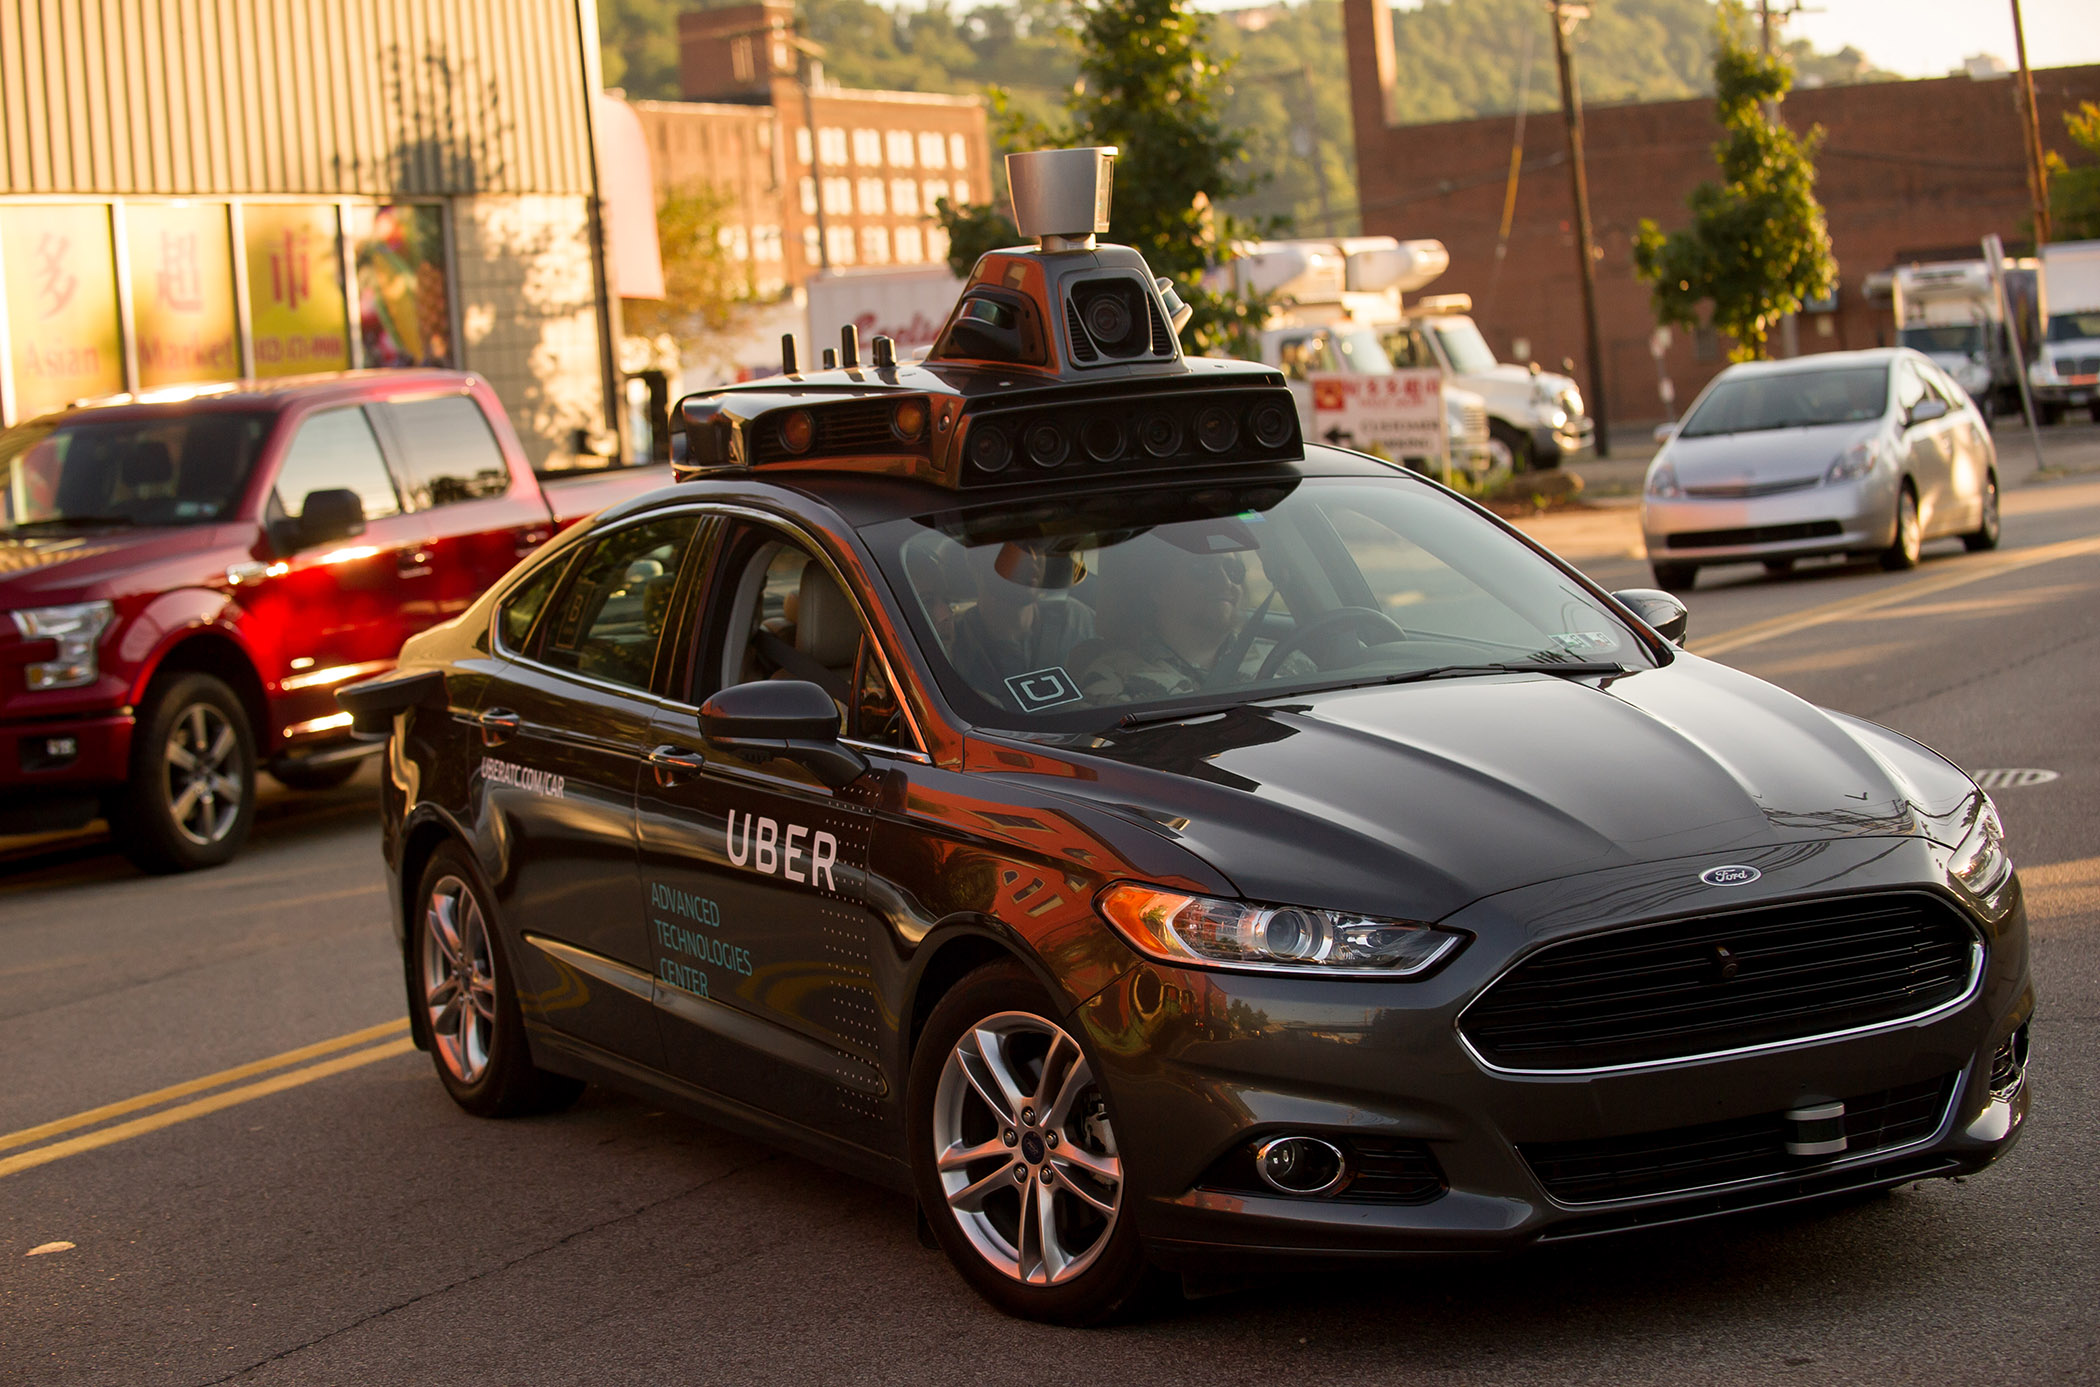 Uber shuts down self-driving testing in Arizona; lays off 300